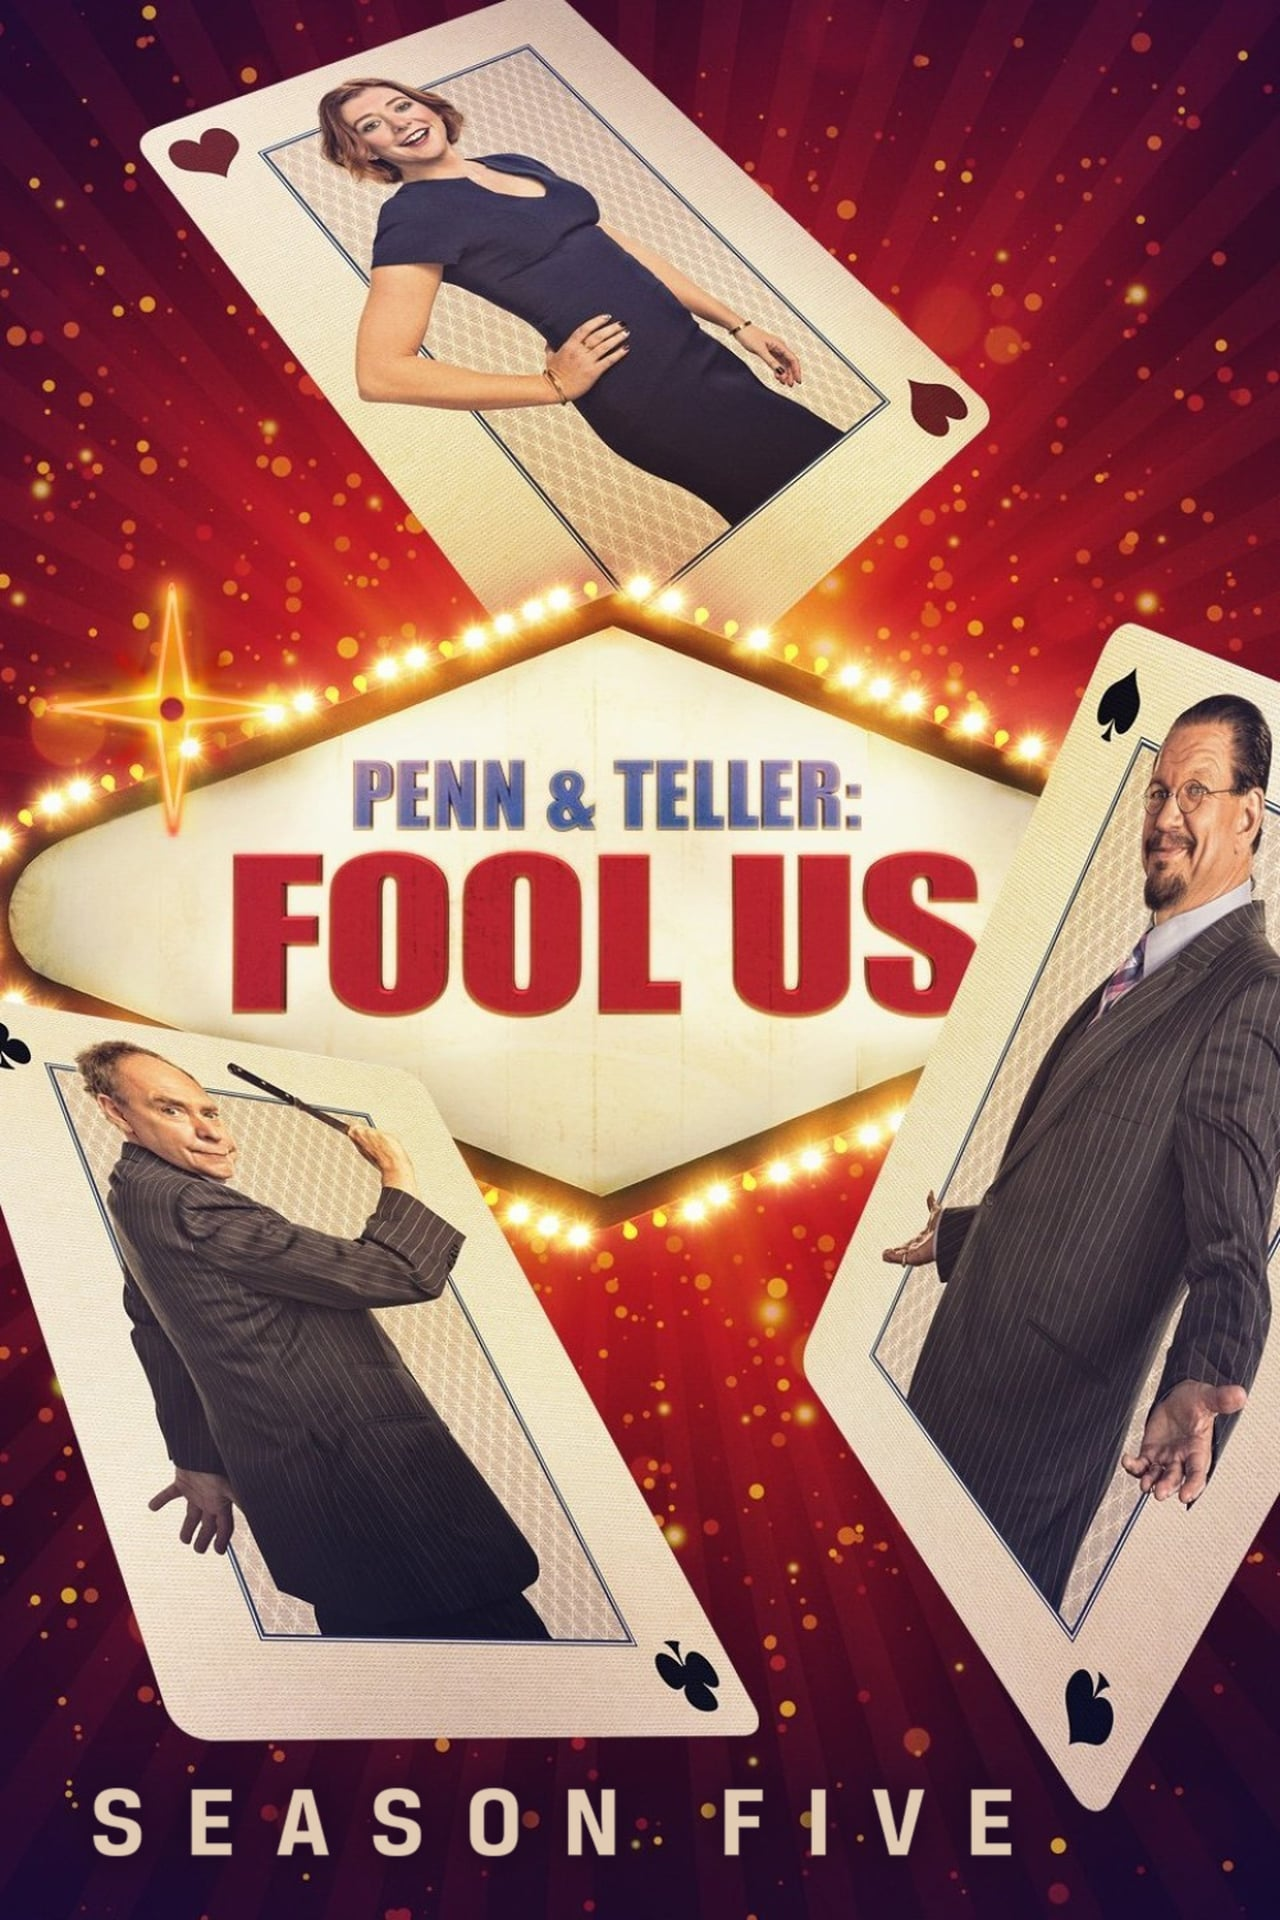 Putlocker Penn & Teller: Fool Us Season 5 (2018)